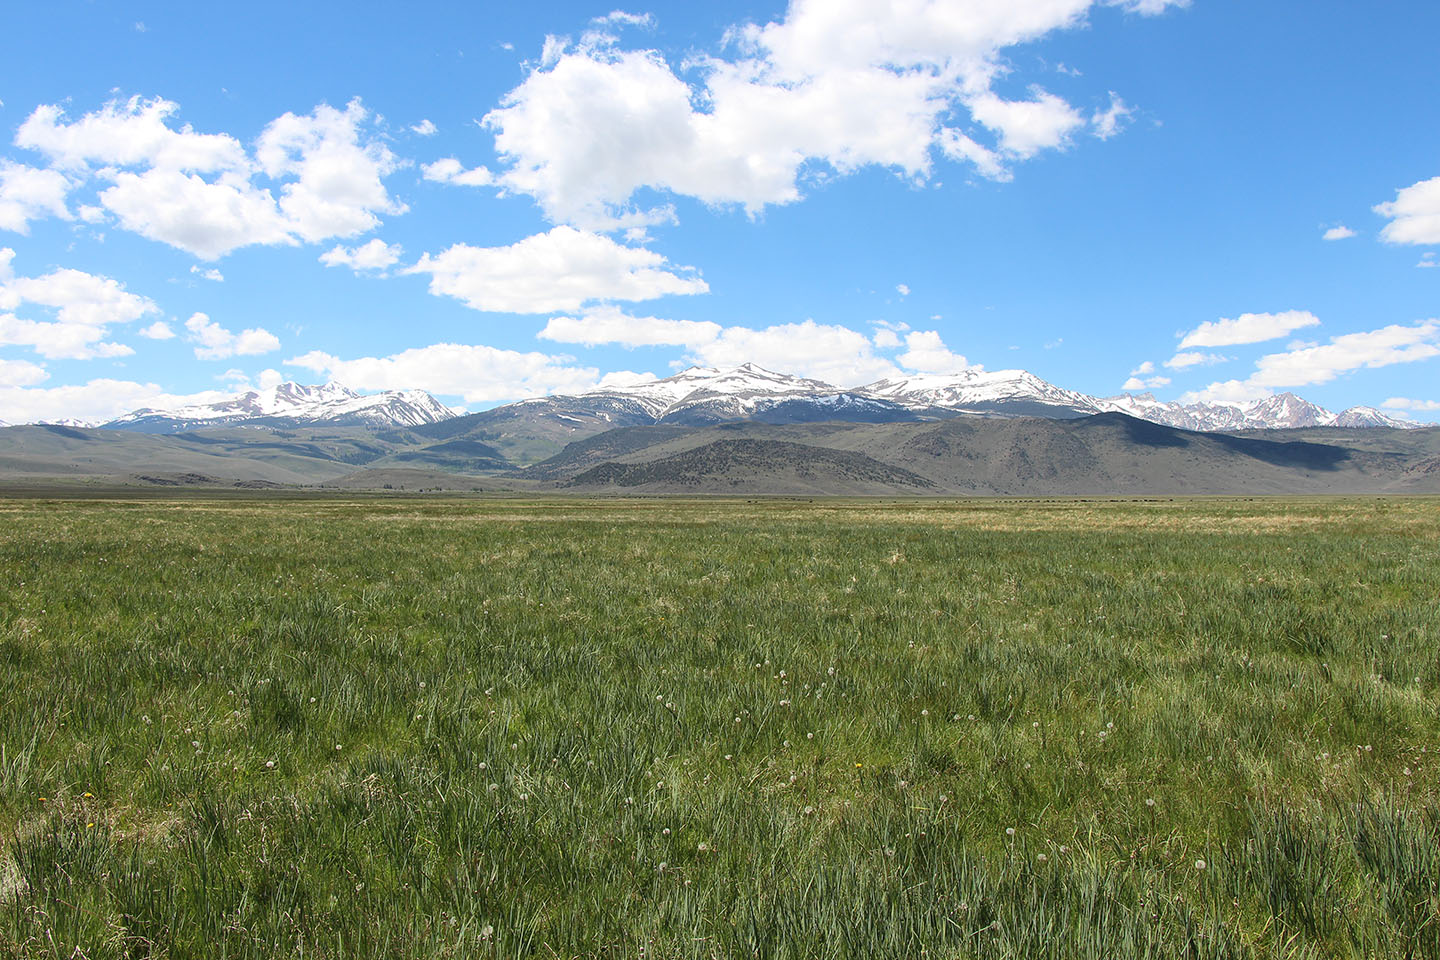 With beautiful mountains that reminded the Sceirines' grandfather of the Alps from his home country of Switzerland, wet meadows, quaking aspen stands and a beautiful sagebrush sea, the Sceirine Point Ranch provides a beautiful landscape